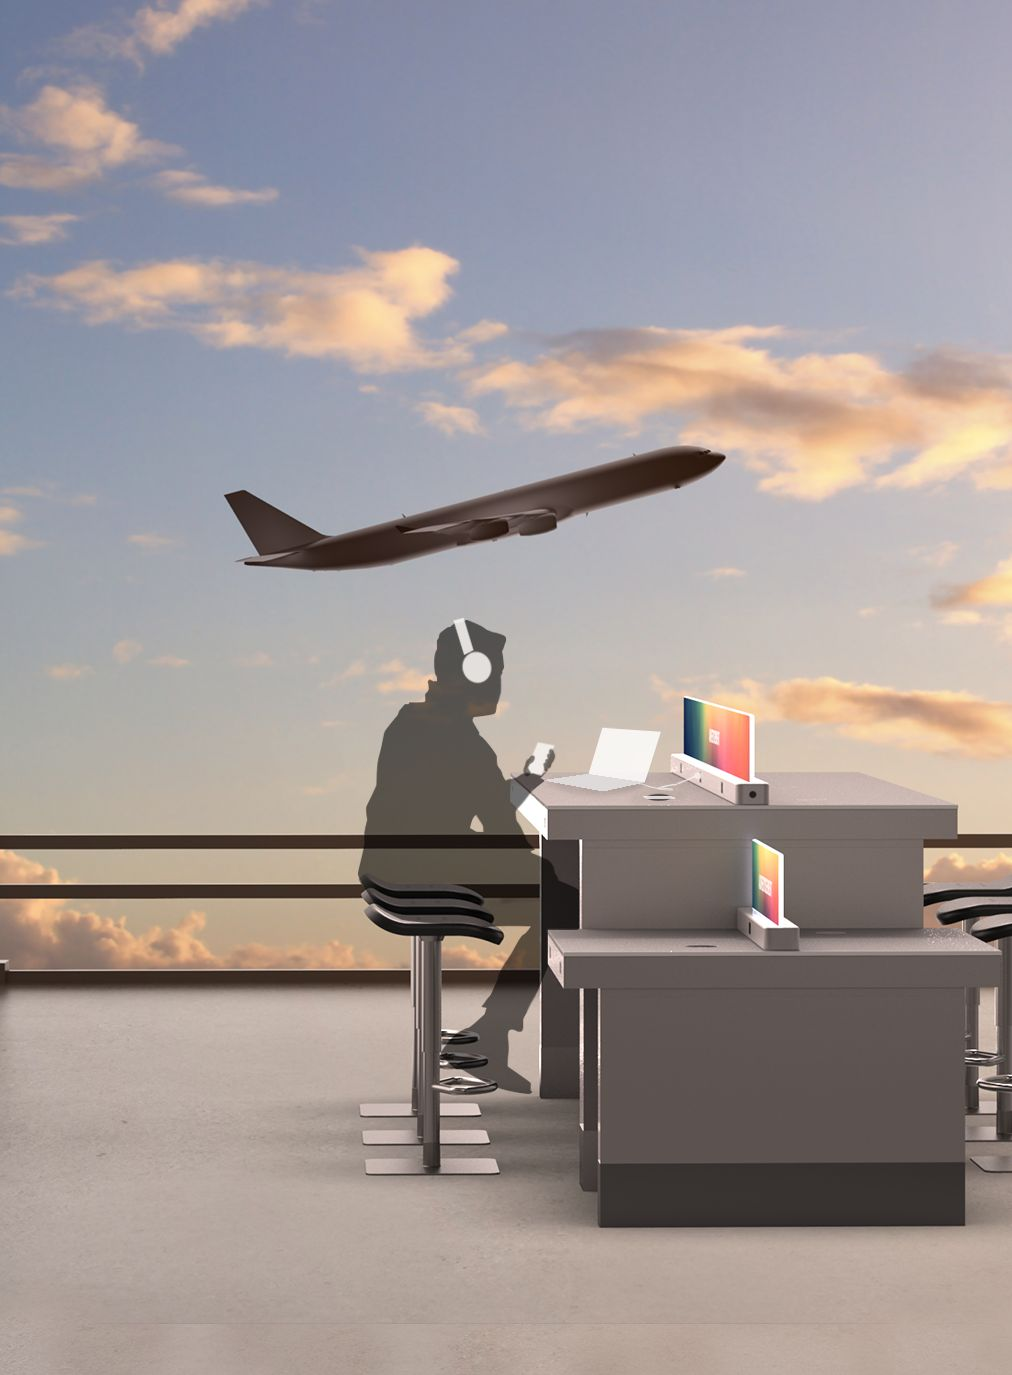 Airport Self-Service and Security Solutions